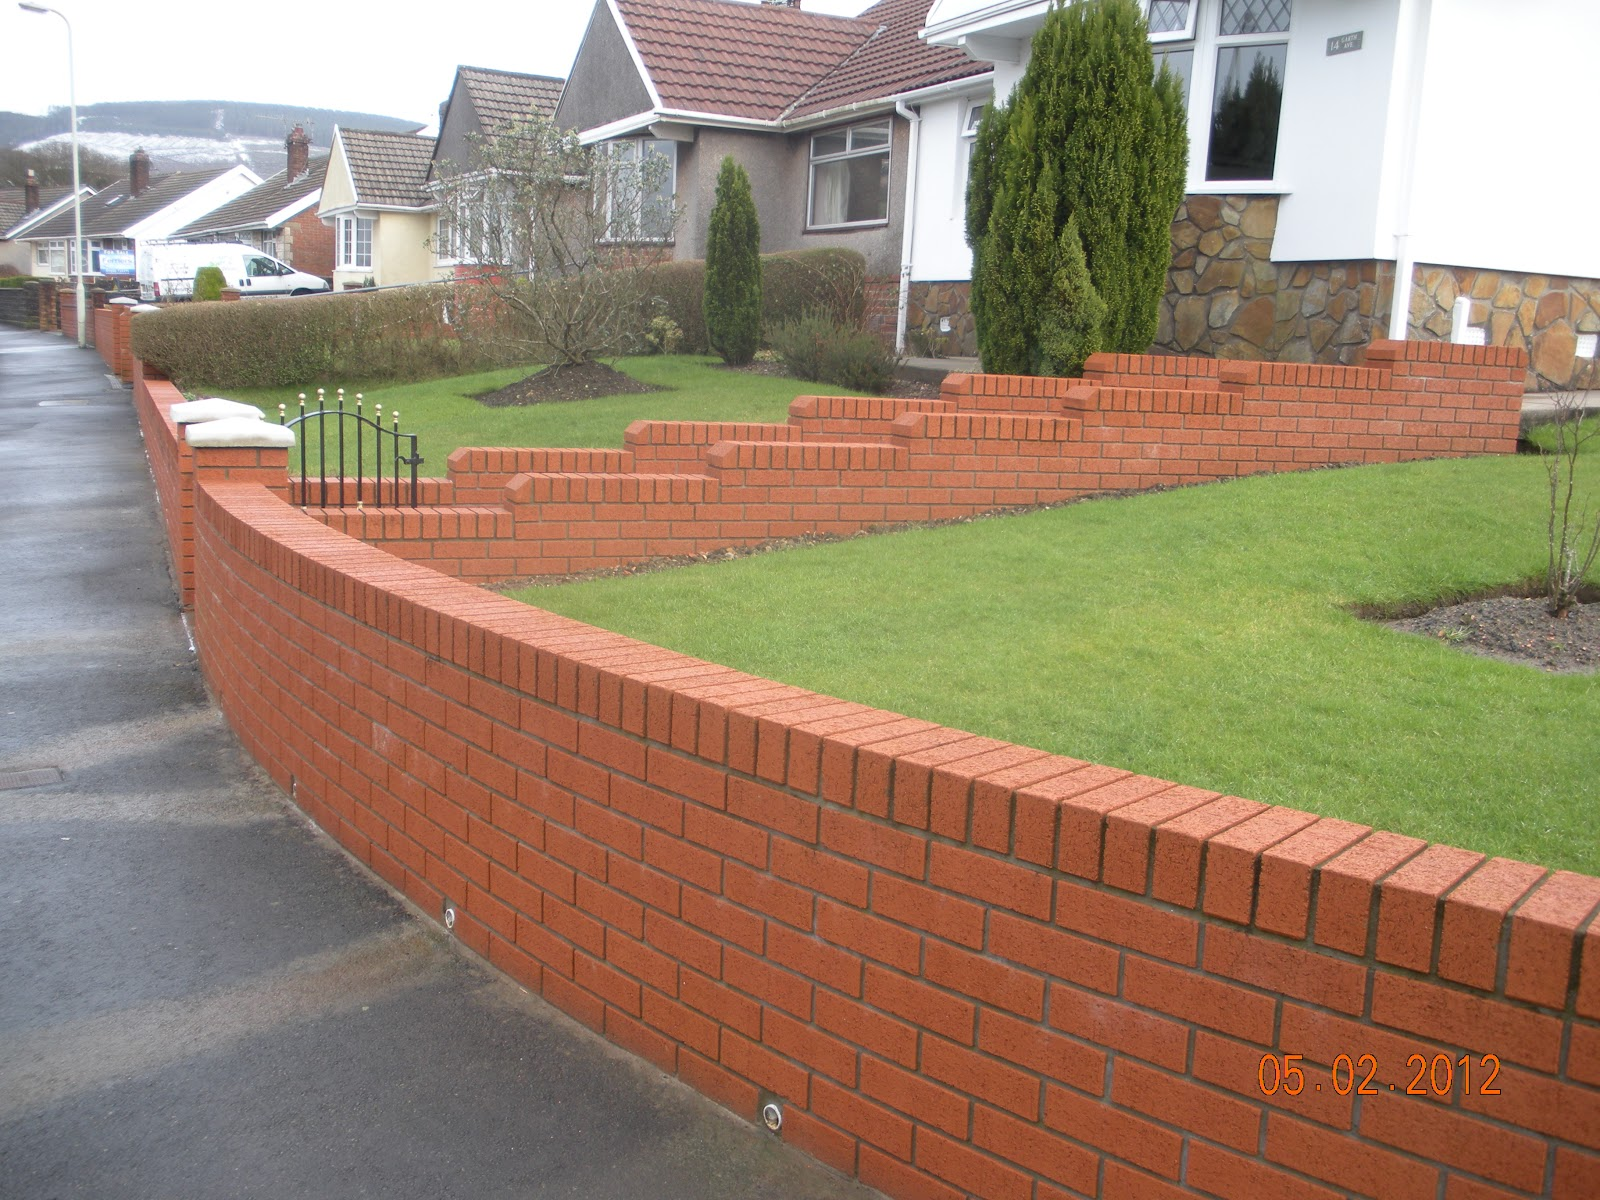 cwm llynfi bricklaying 9 inch red face brick garden wall